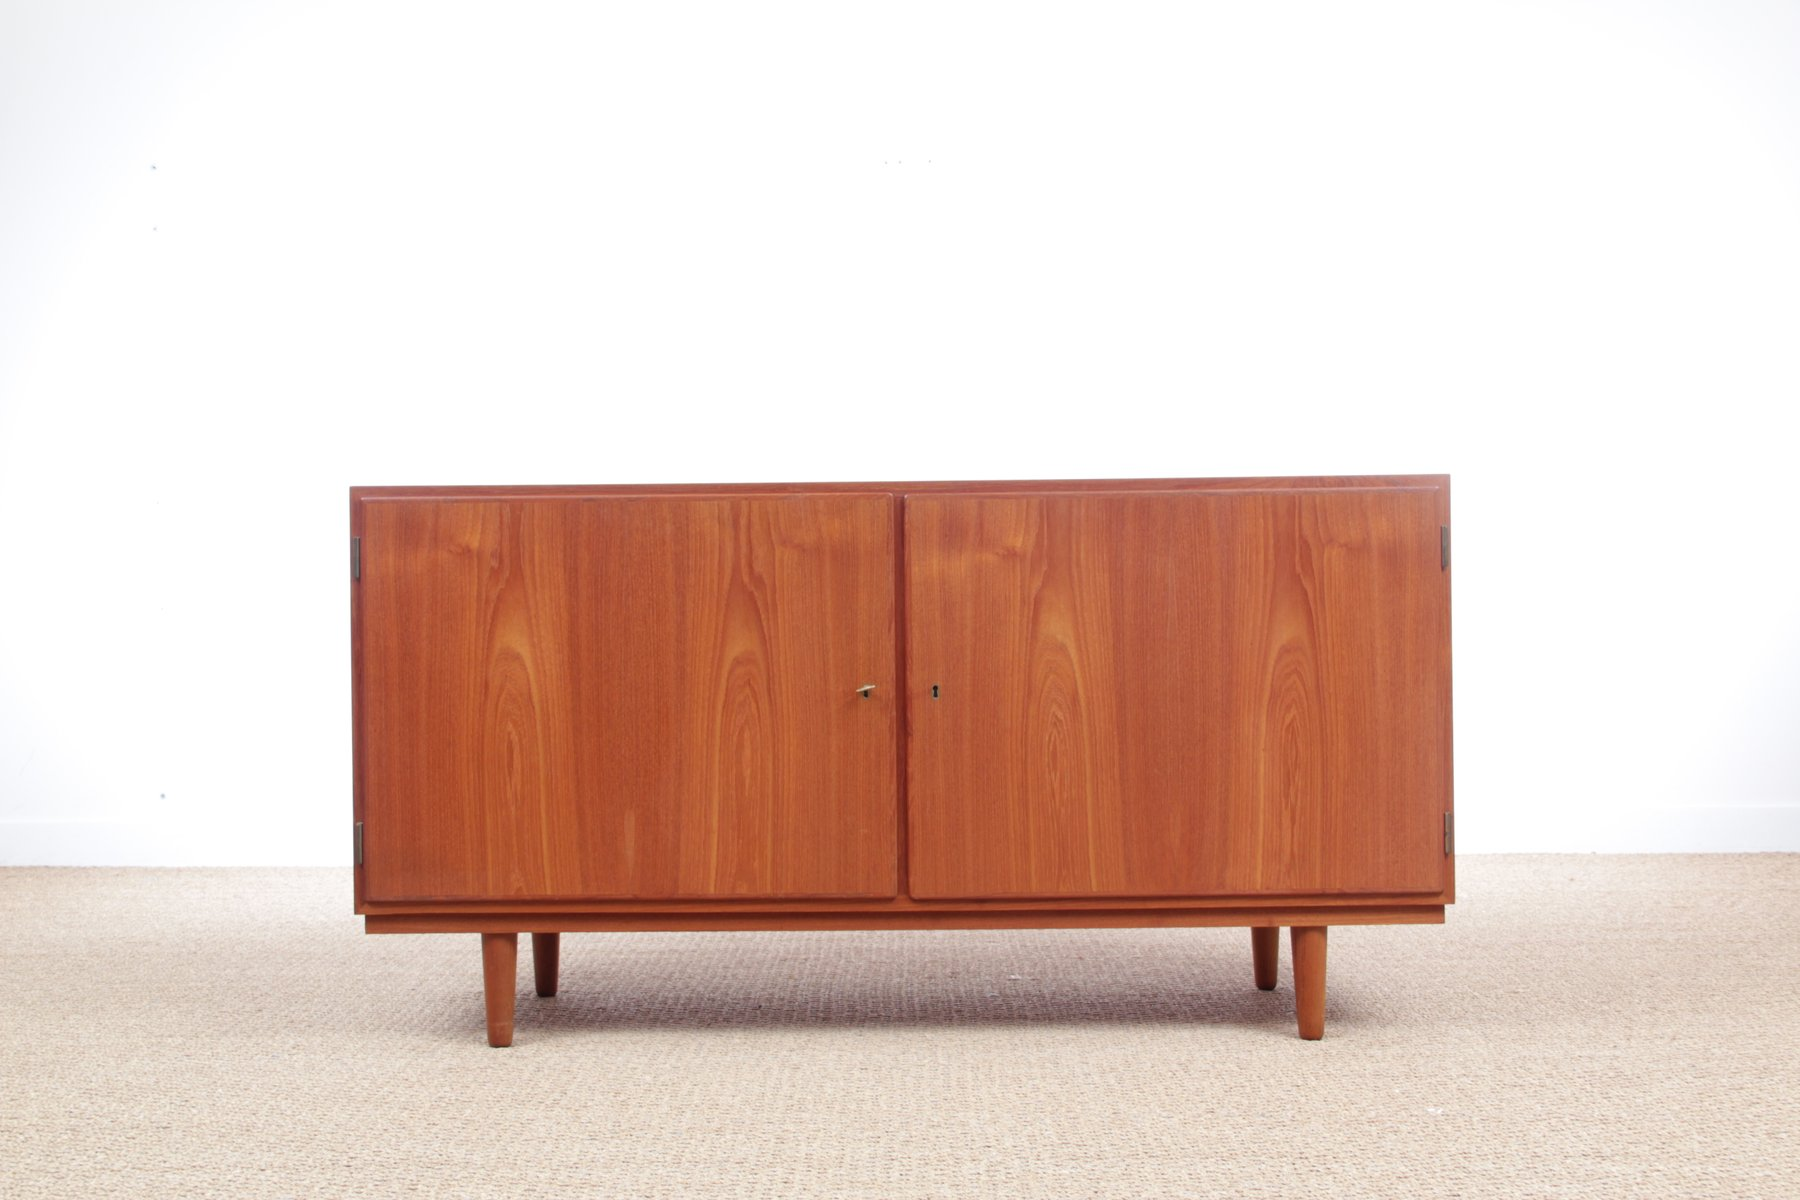 skandinavisches modell hu40 3t teak sideboard von poul hundevad 1960er bei pamono kaufen. Black Bedroom Furniture Sets. Home Design Ideas